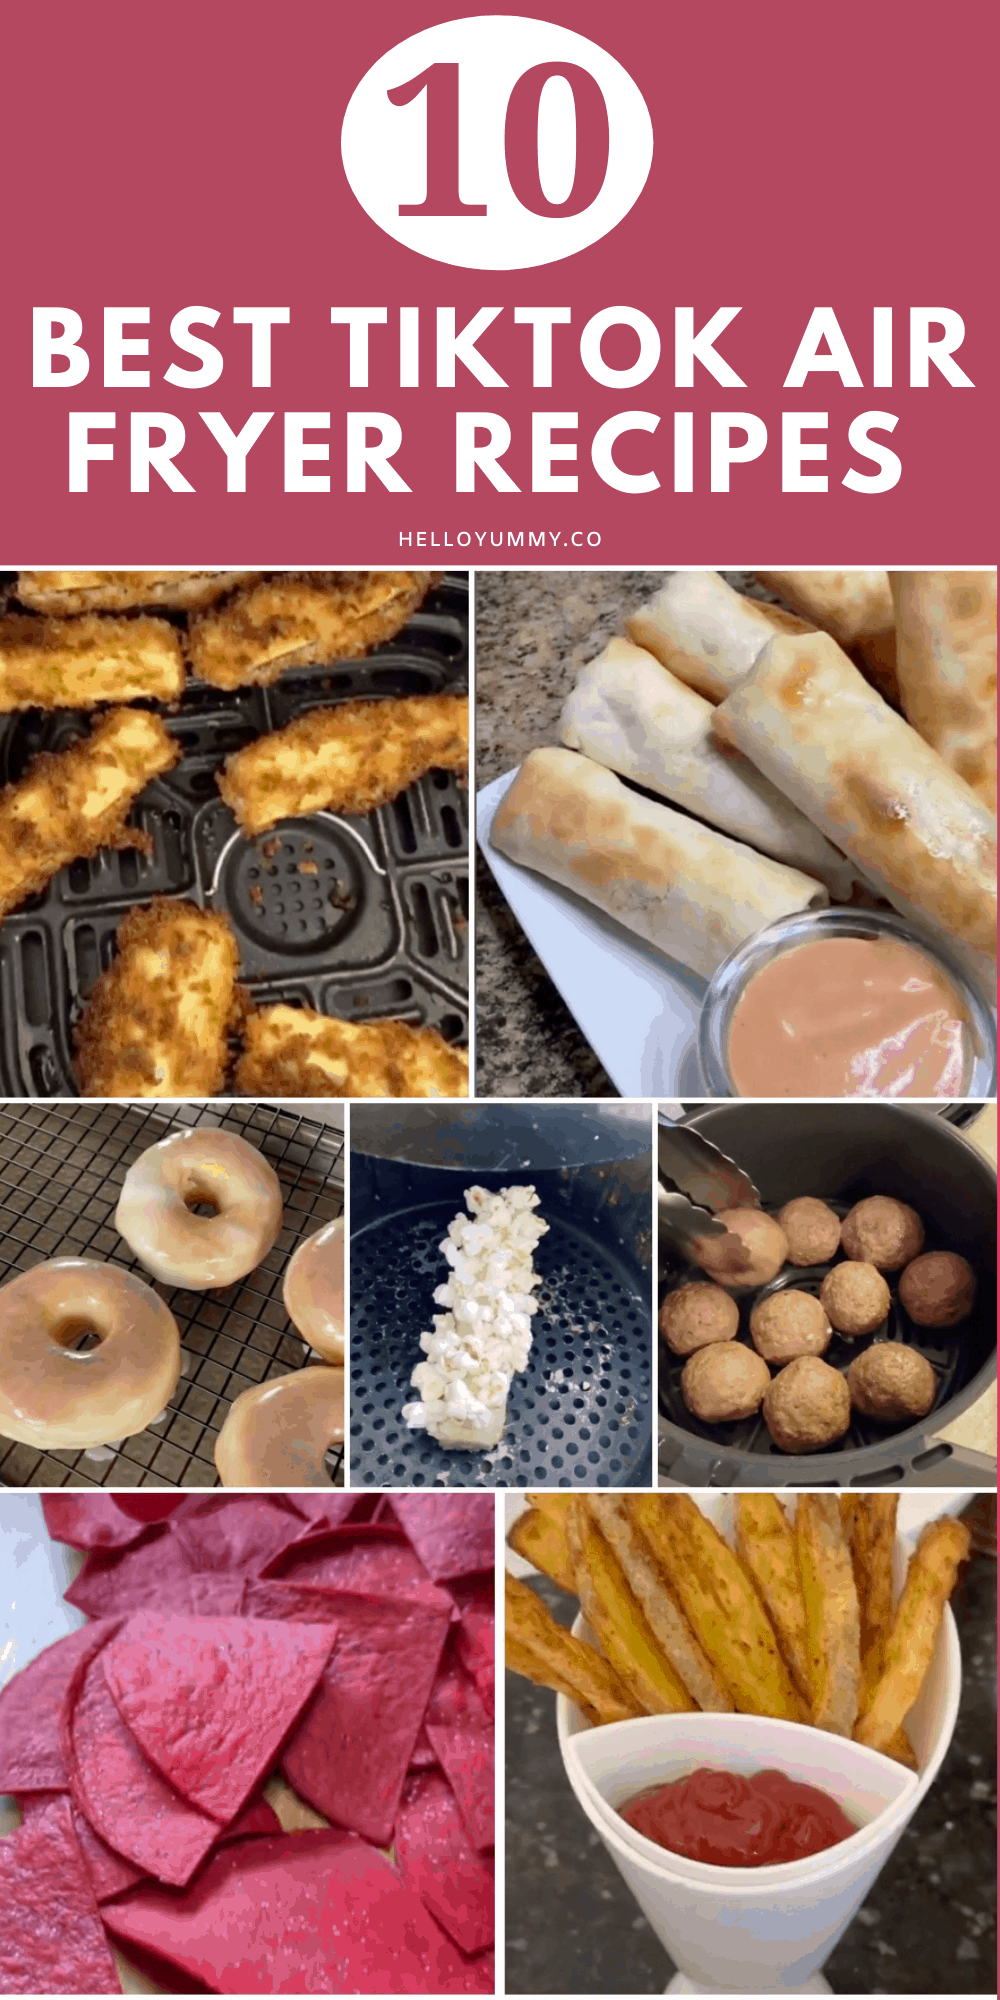 Best TikTok Air Fryer Recipes